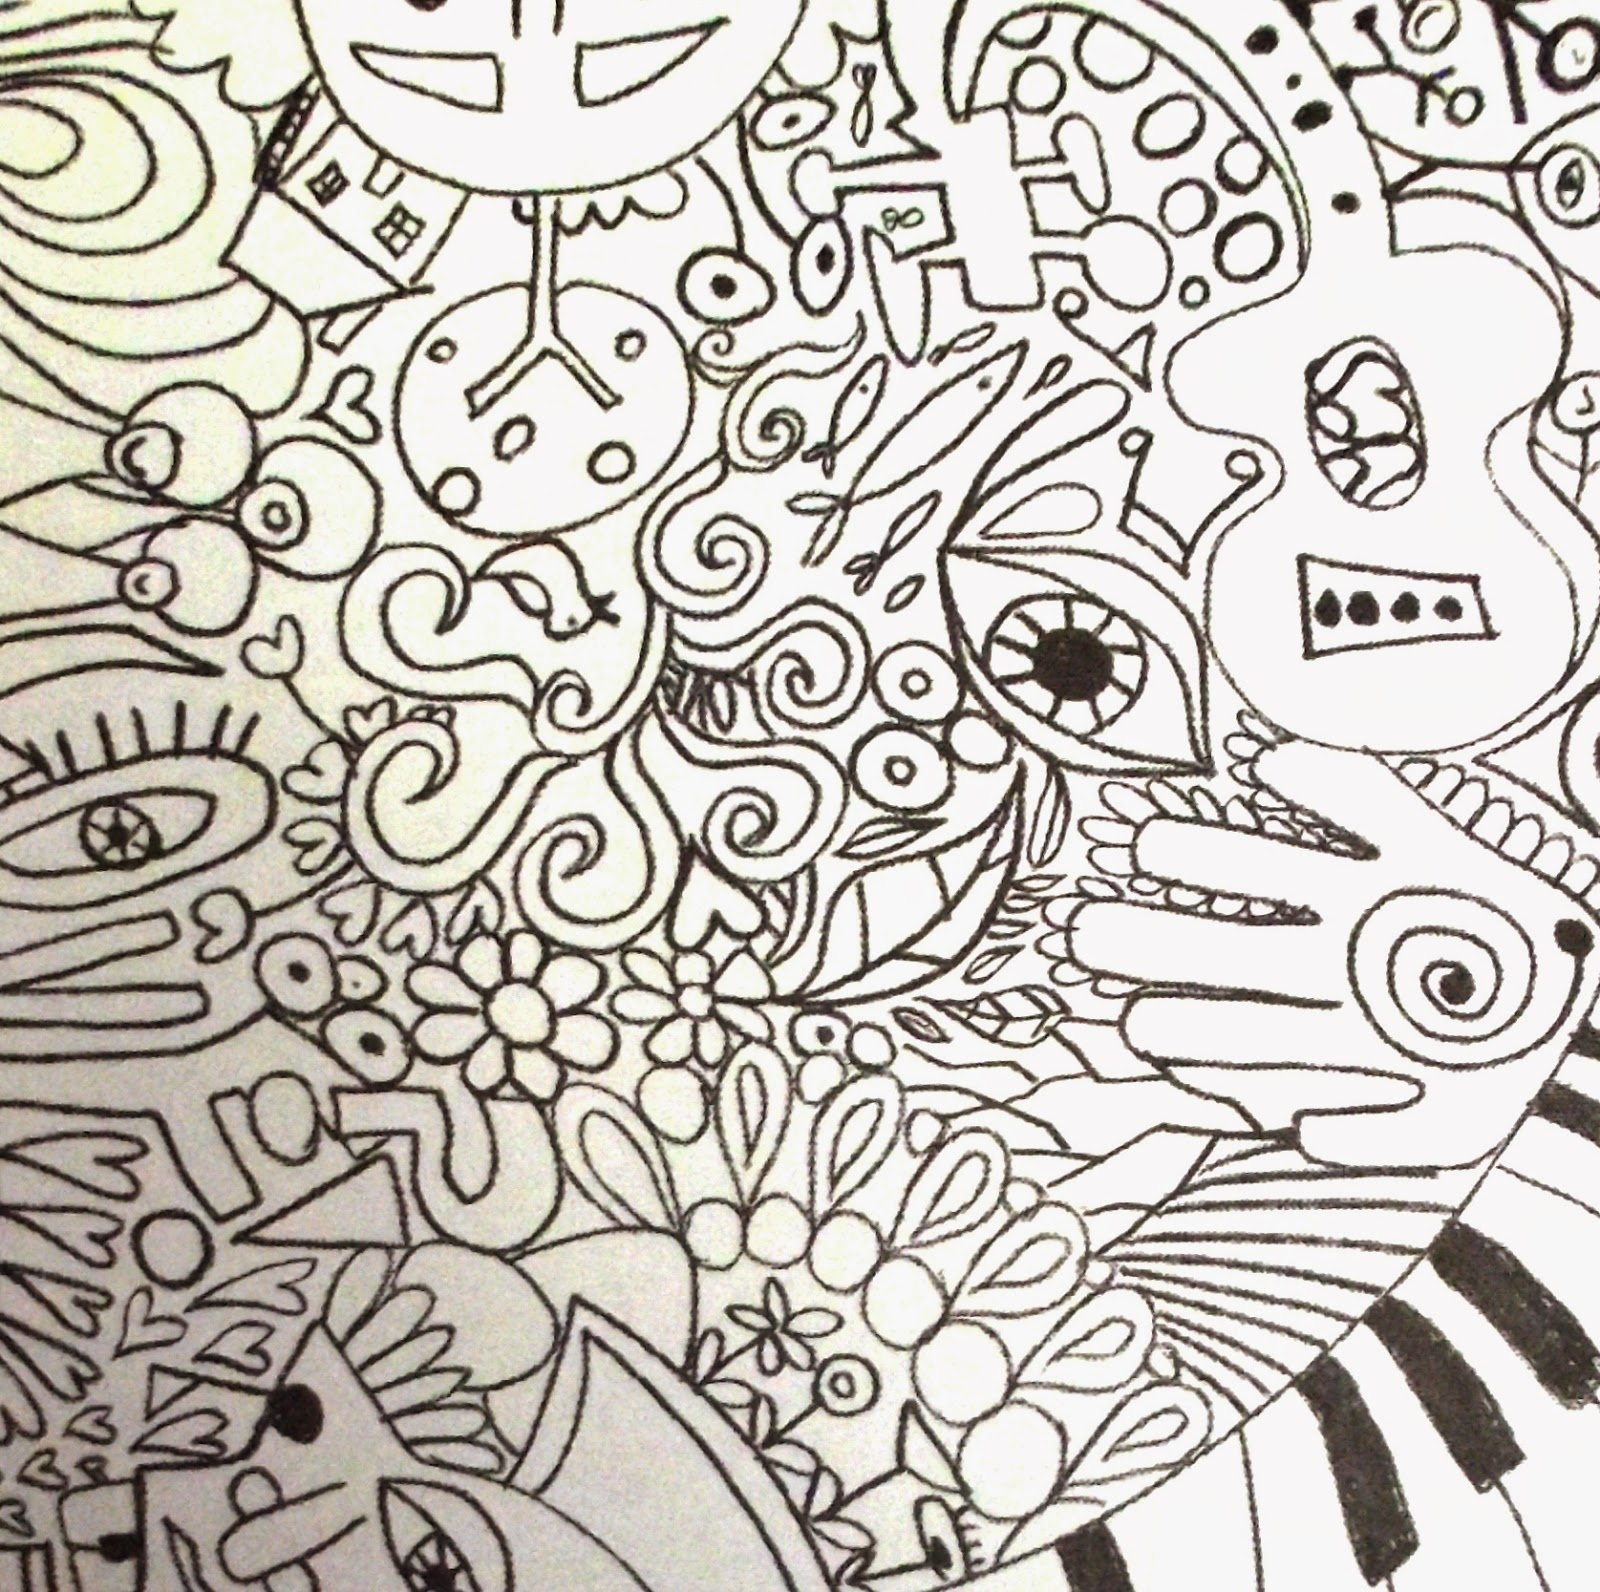 Hard Abstract Coloring Pages Printable : Abstract coloring pages for teenagers difficult